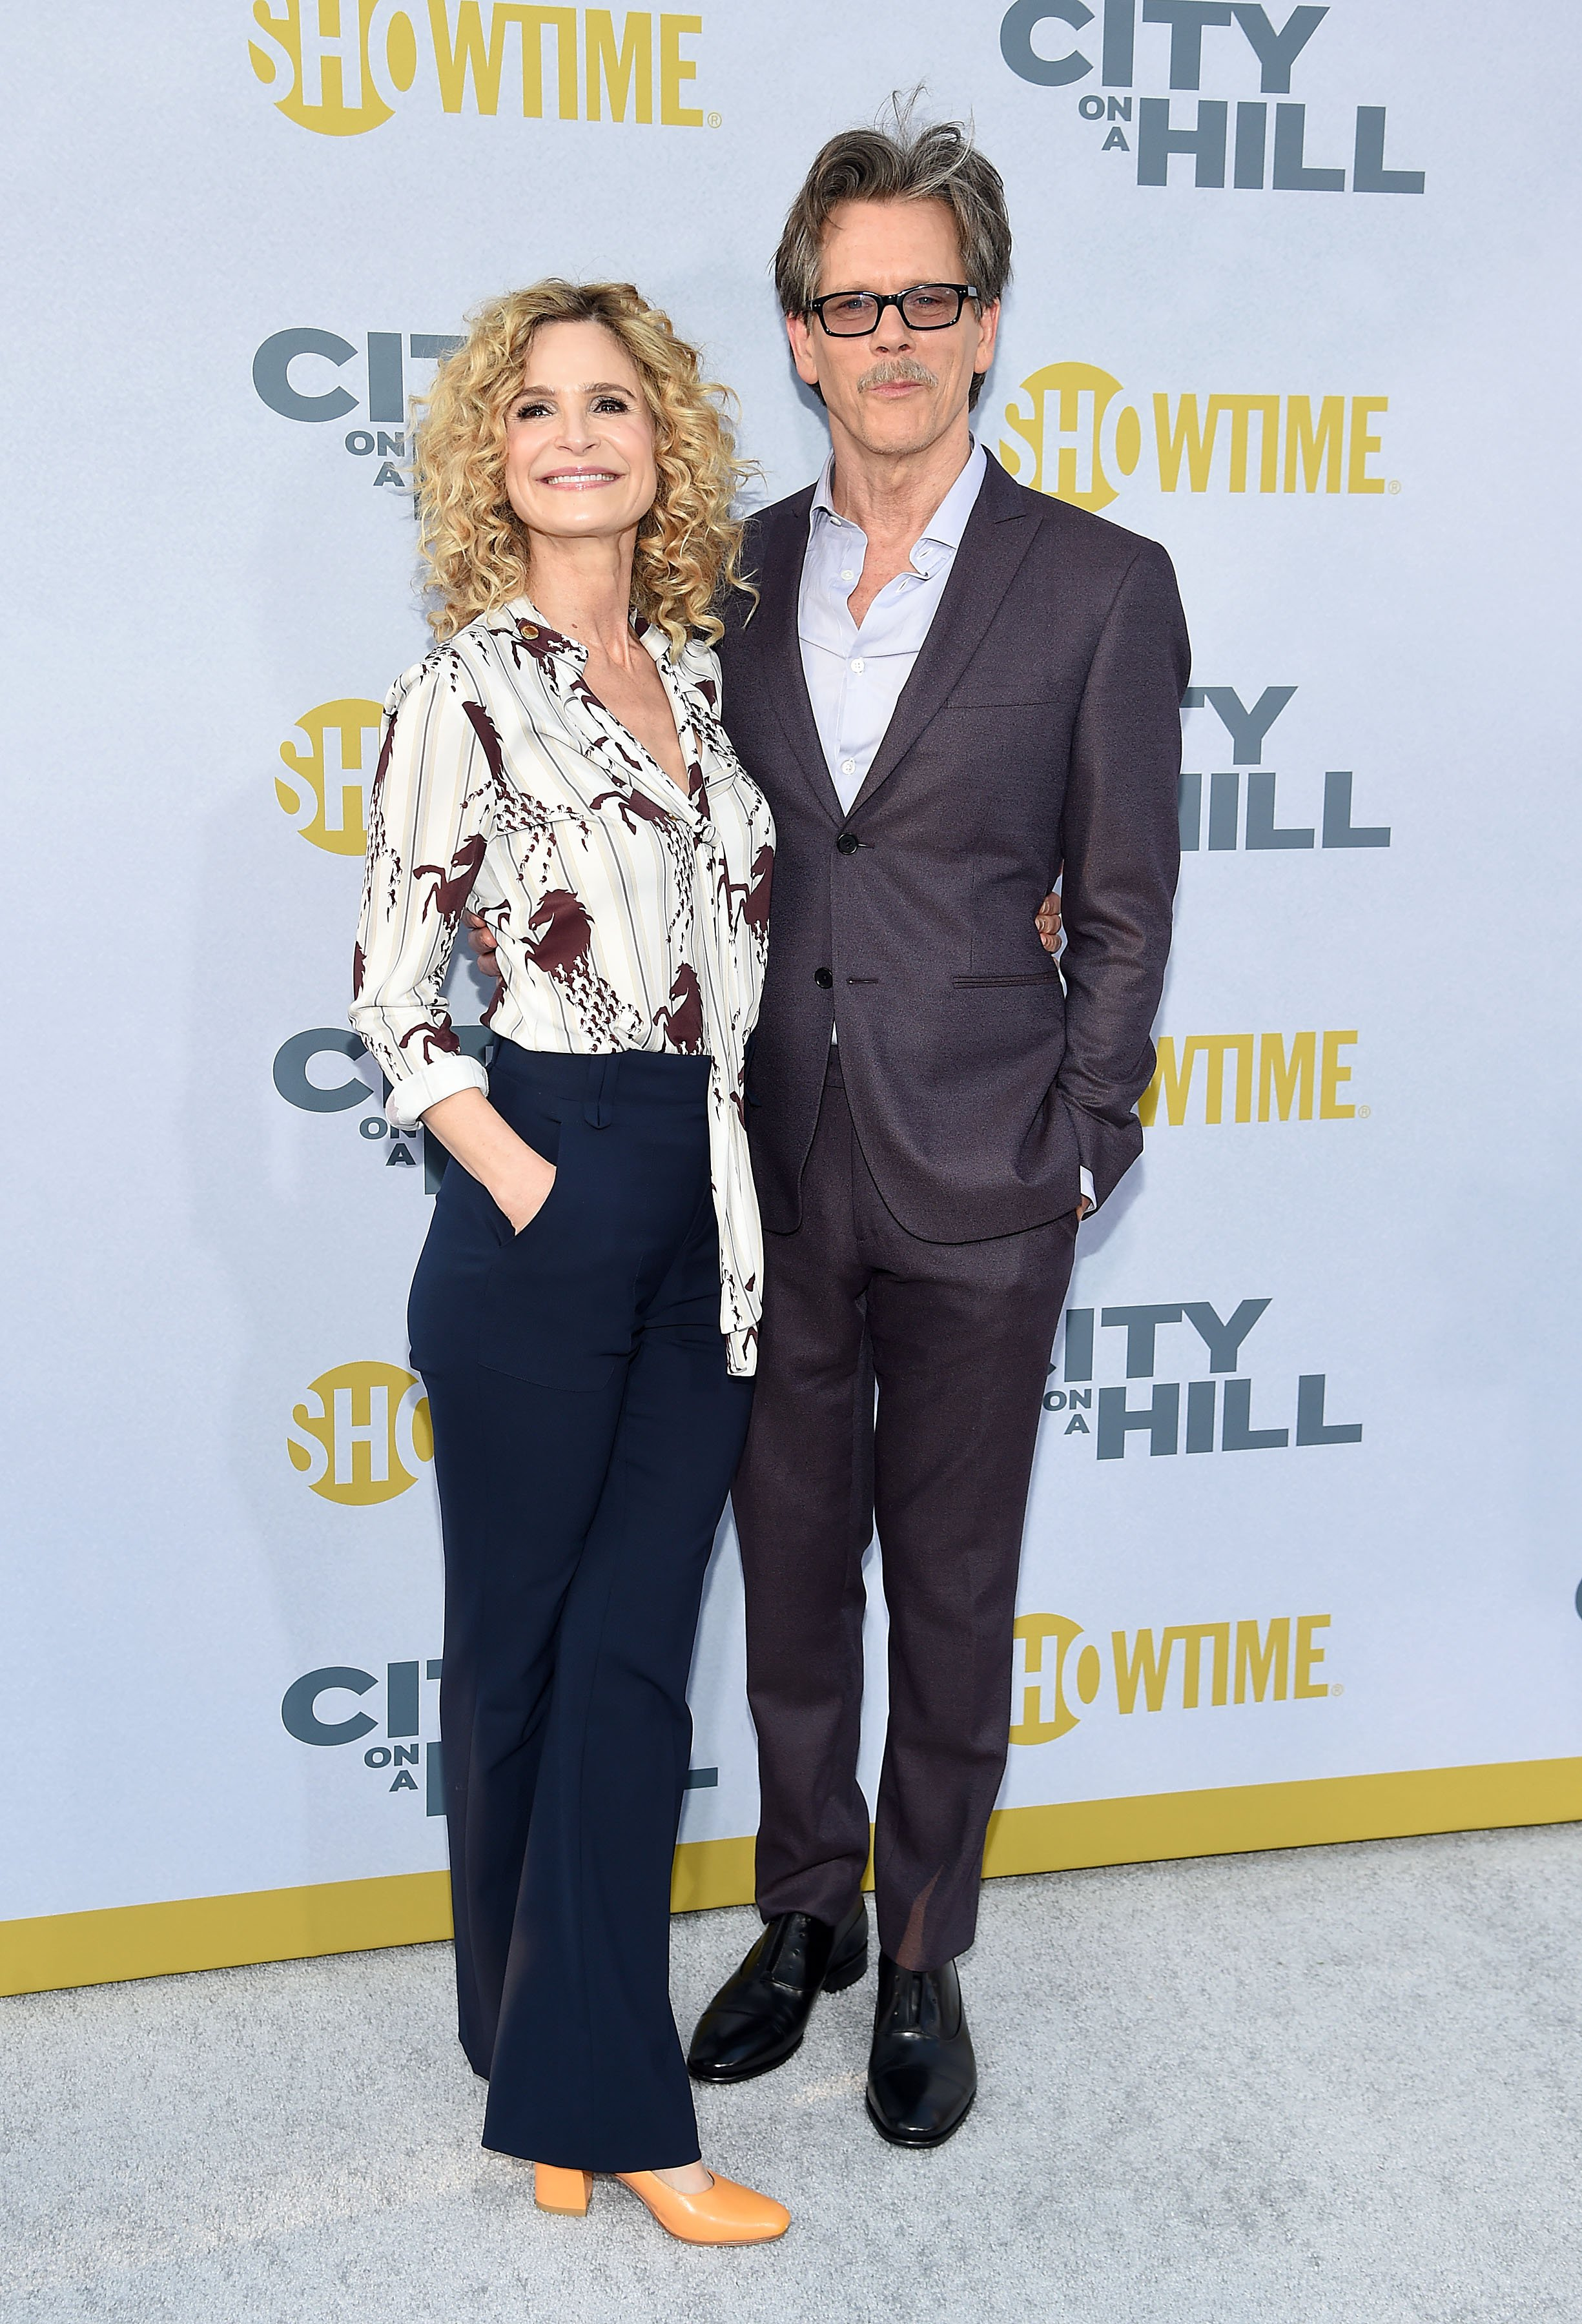 """Kyra Sedgwick and Kevin Bacon attend Showtime's """"City On A Hill"""" in New York City on June 4, 2019 